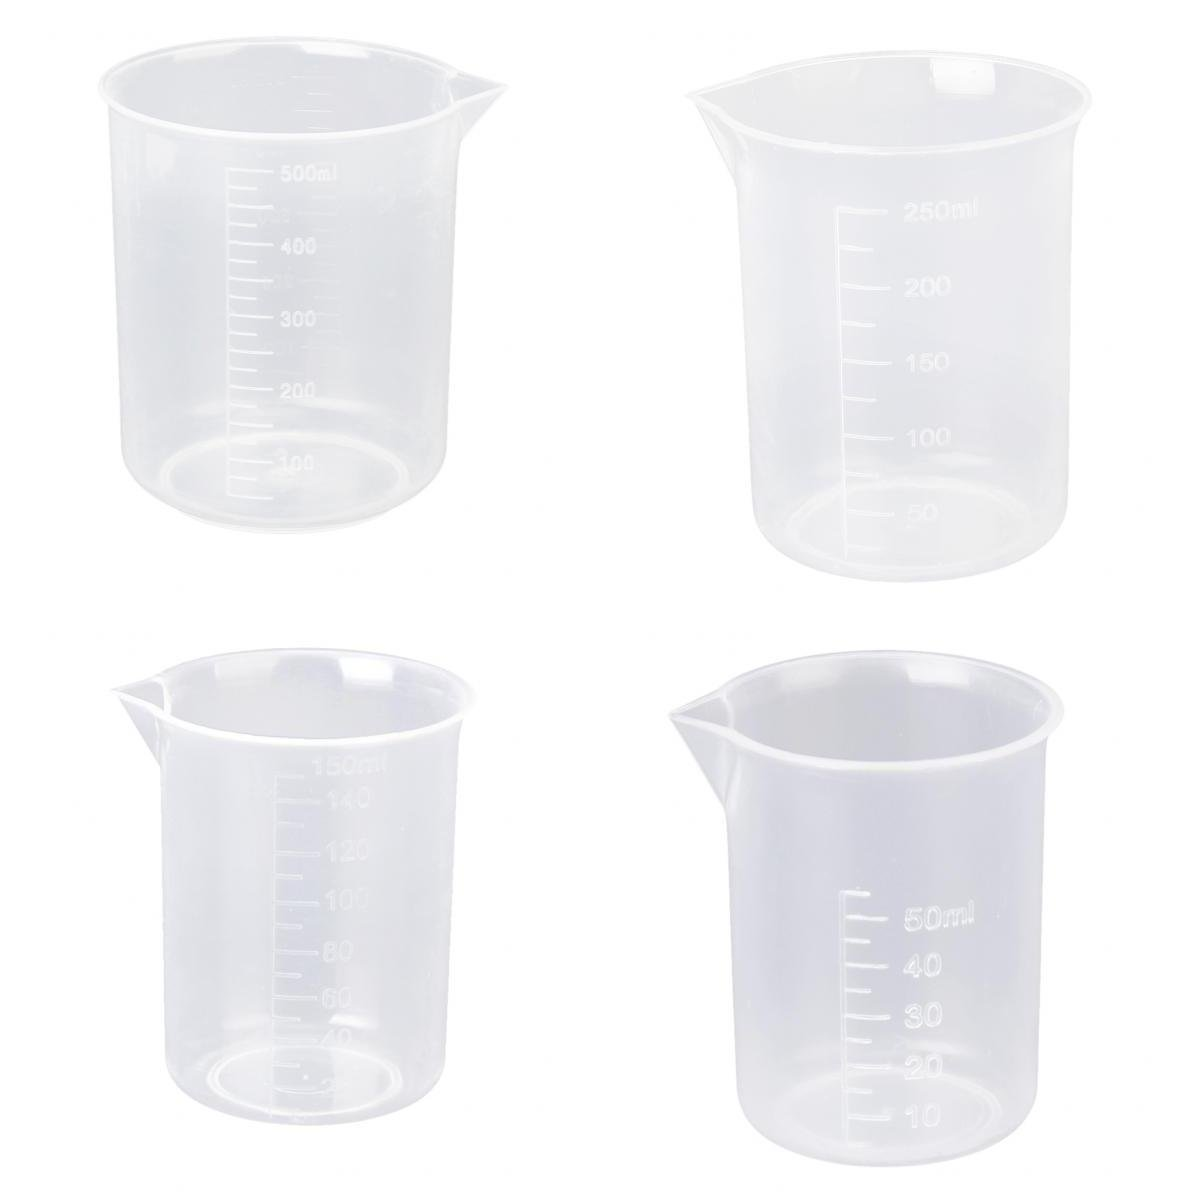 SOSW- 50 150 250 500 Ml Laboratory Transparent Plastic Measuring Cup 4 Pieces. Tool Measuring Cup